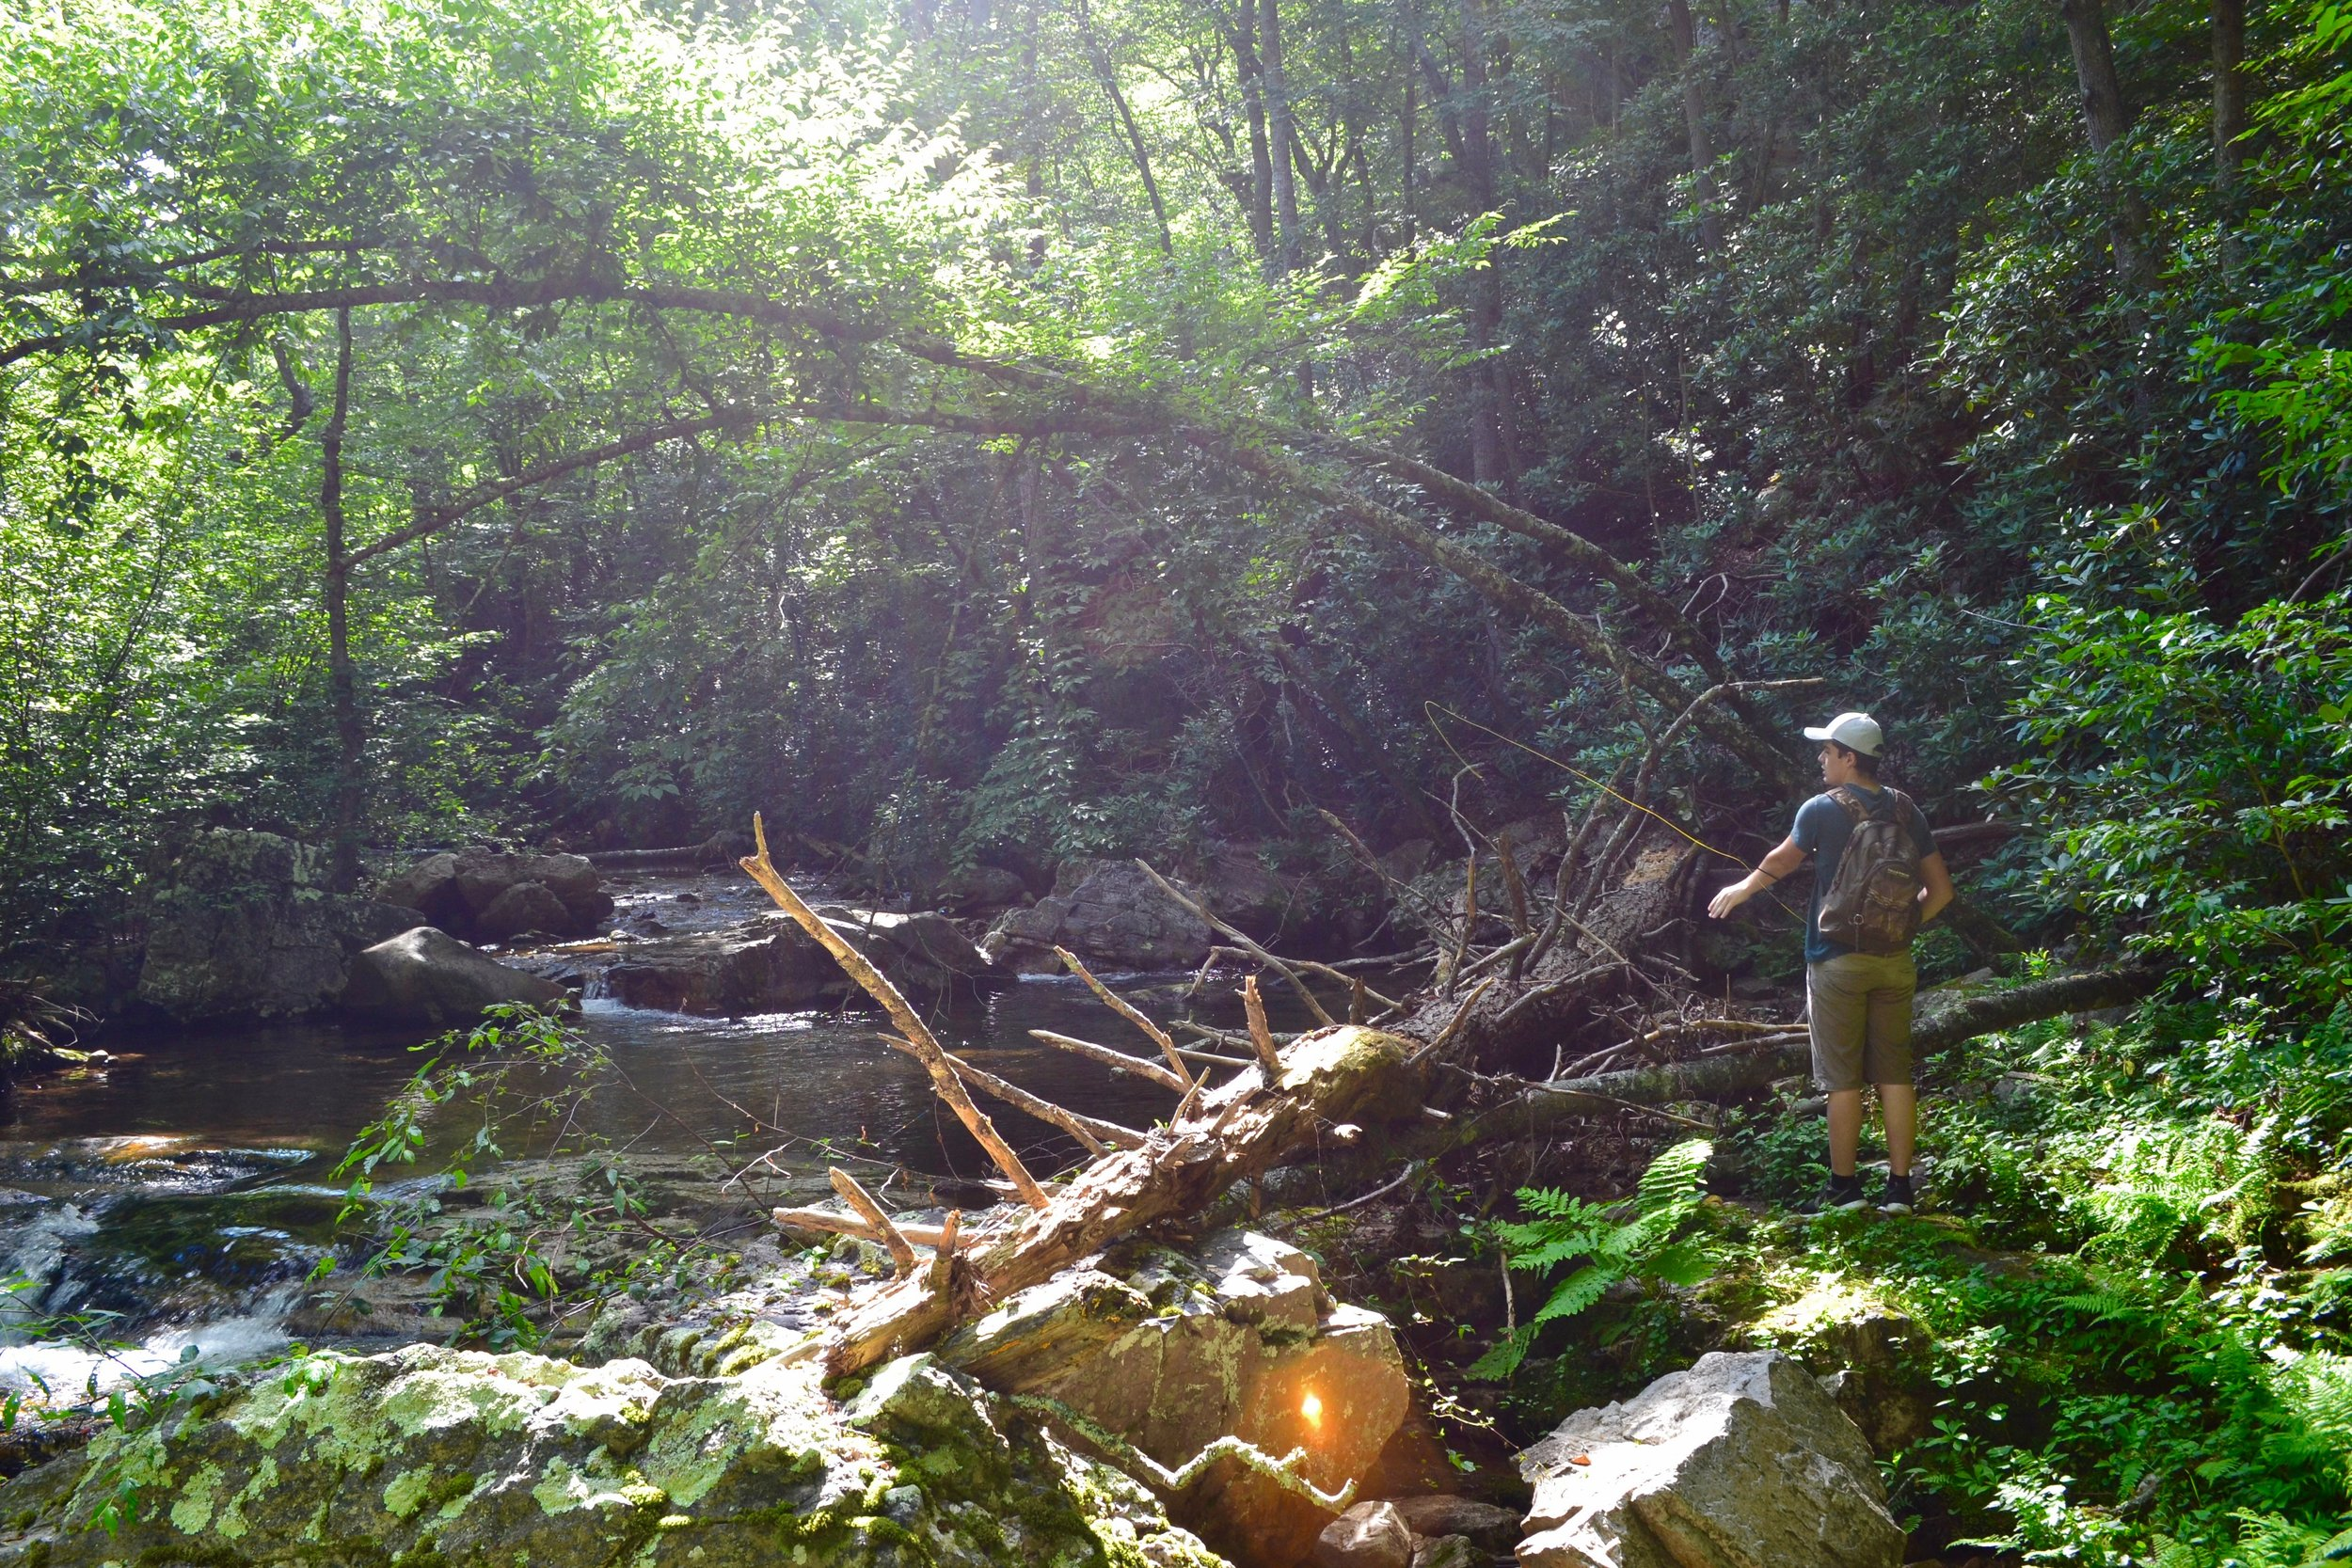 Dillon encountering small stream problems:spooky trout, fallen timber, and difficult casts.